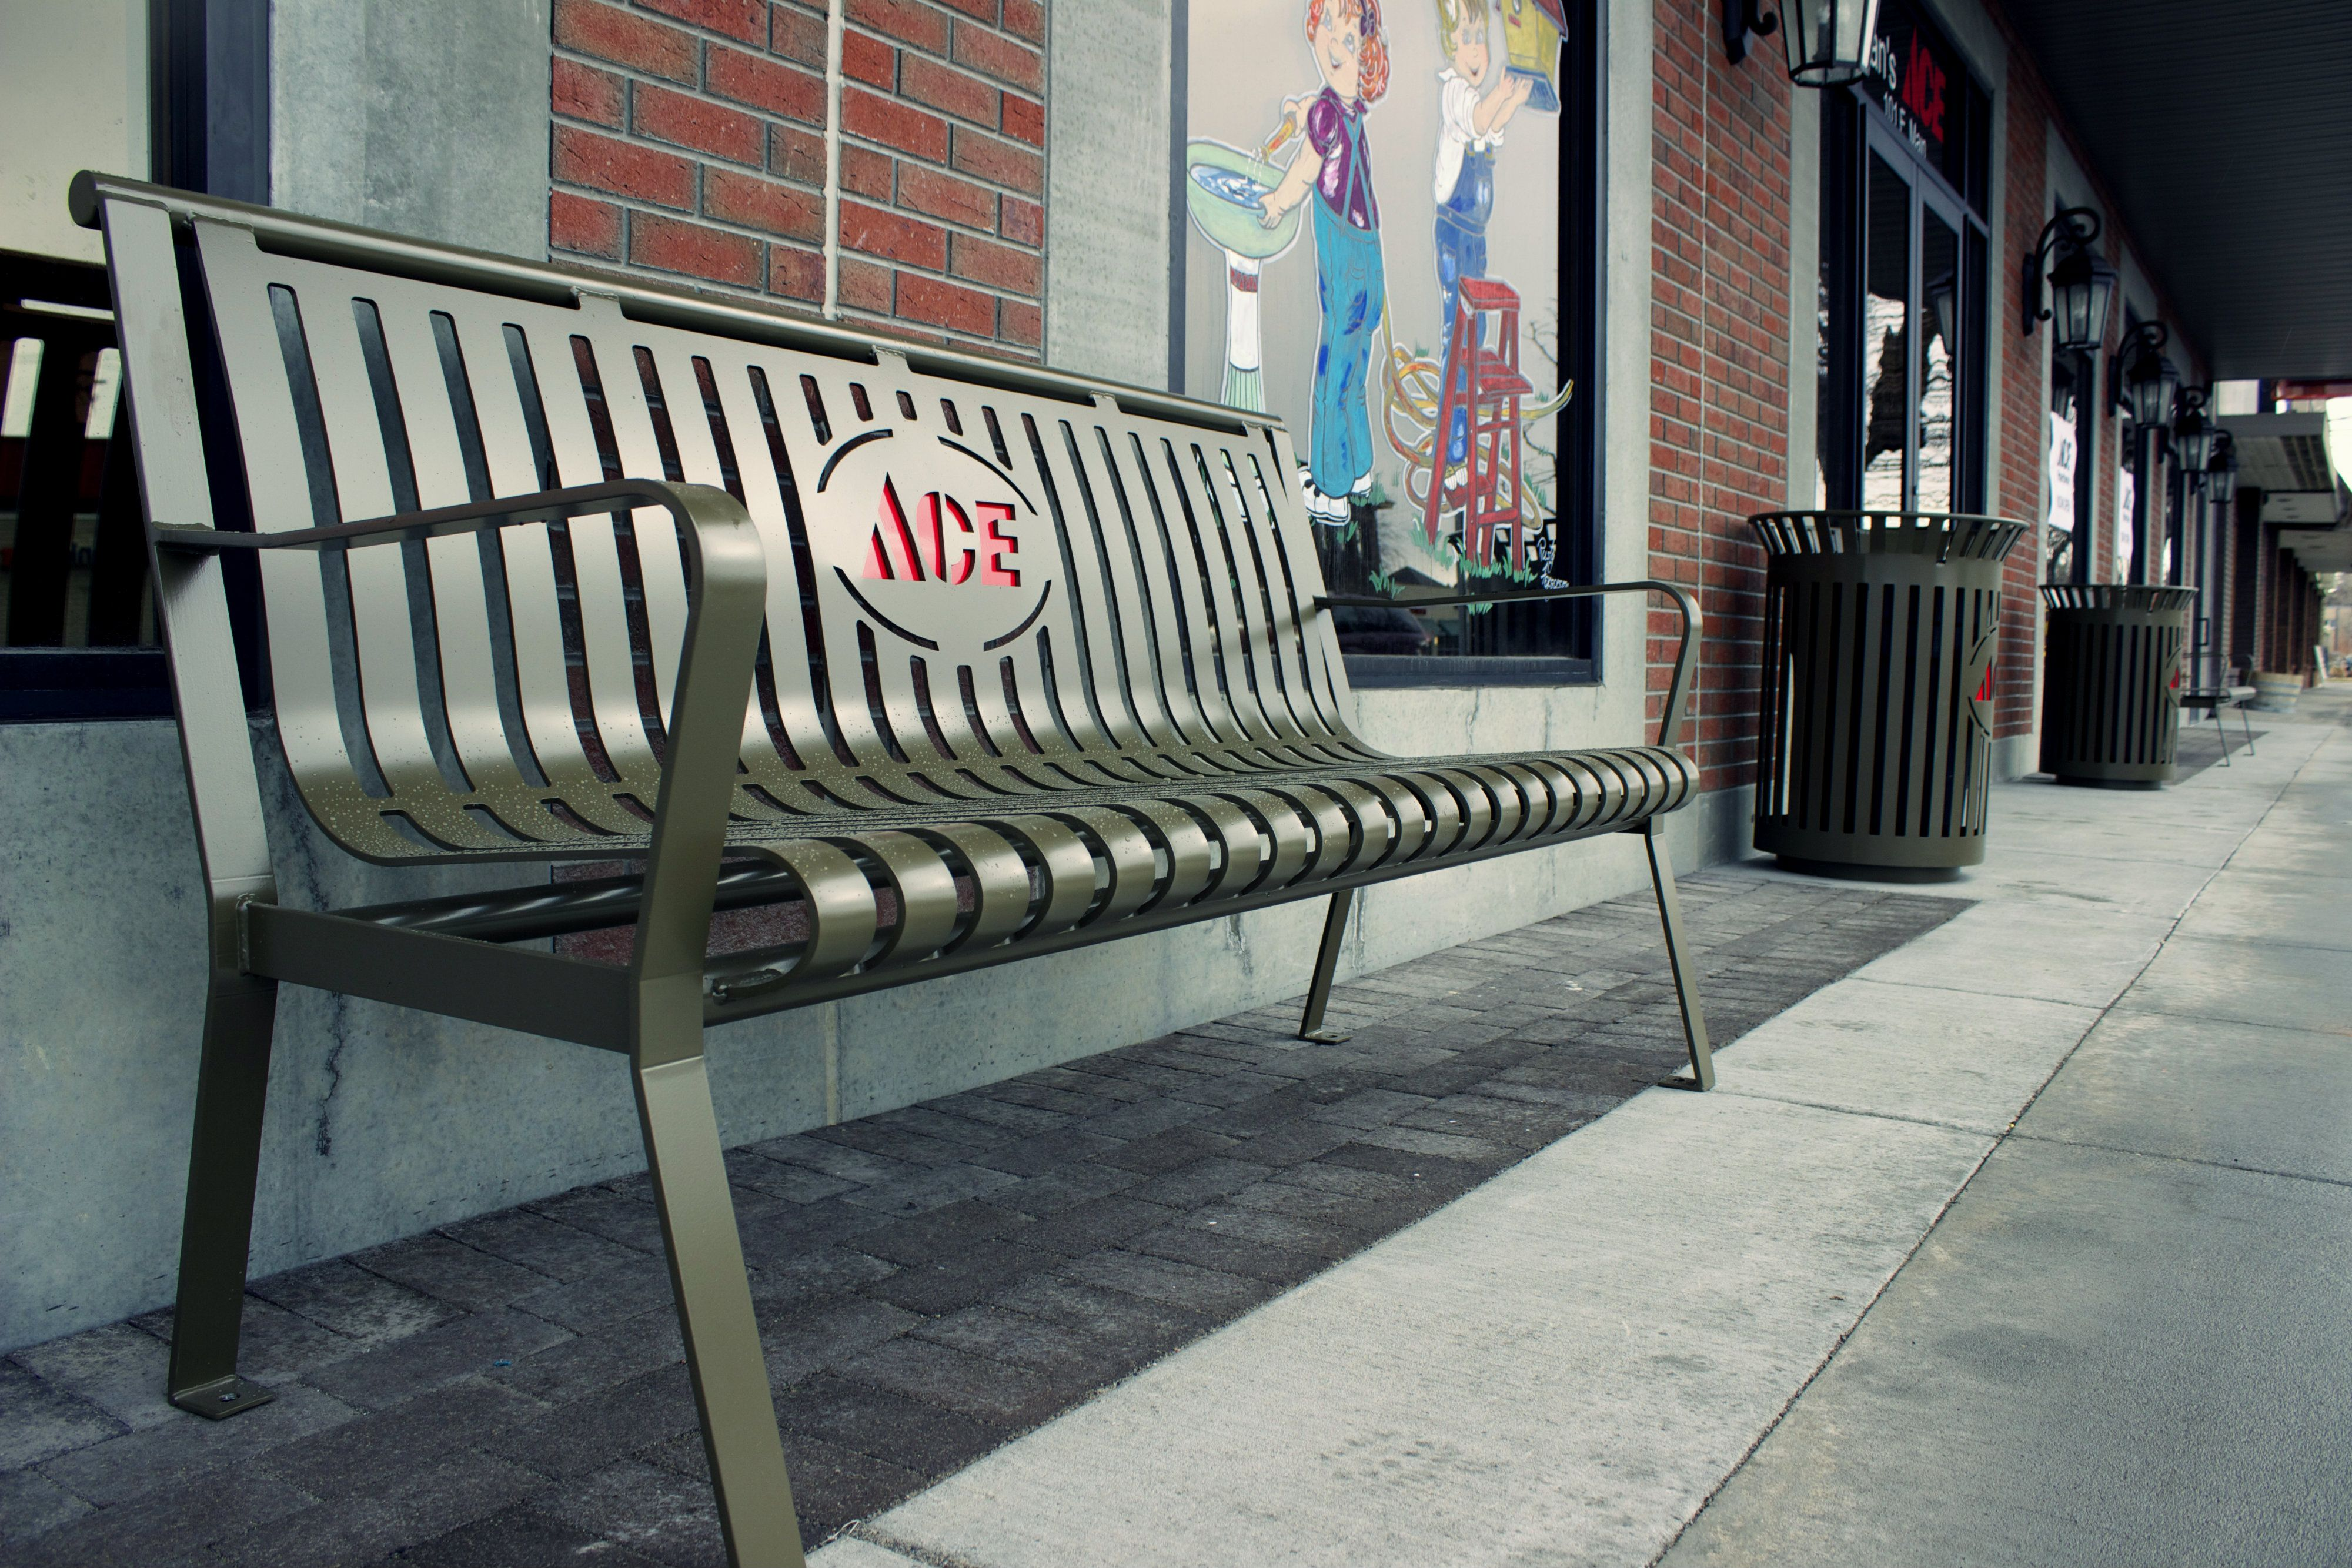 Hey businesses! The sleek, modern design of our benches